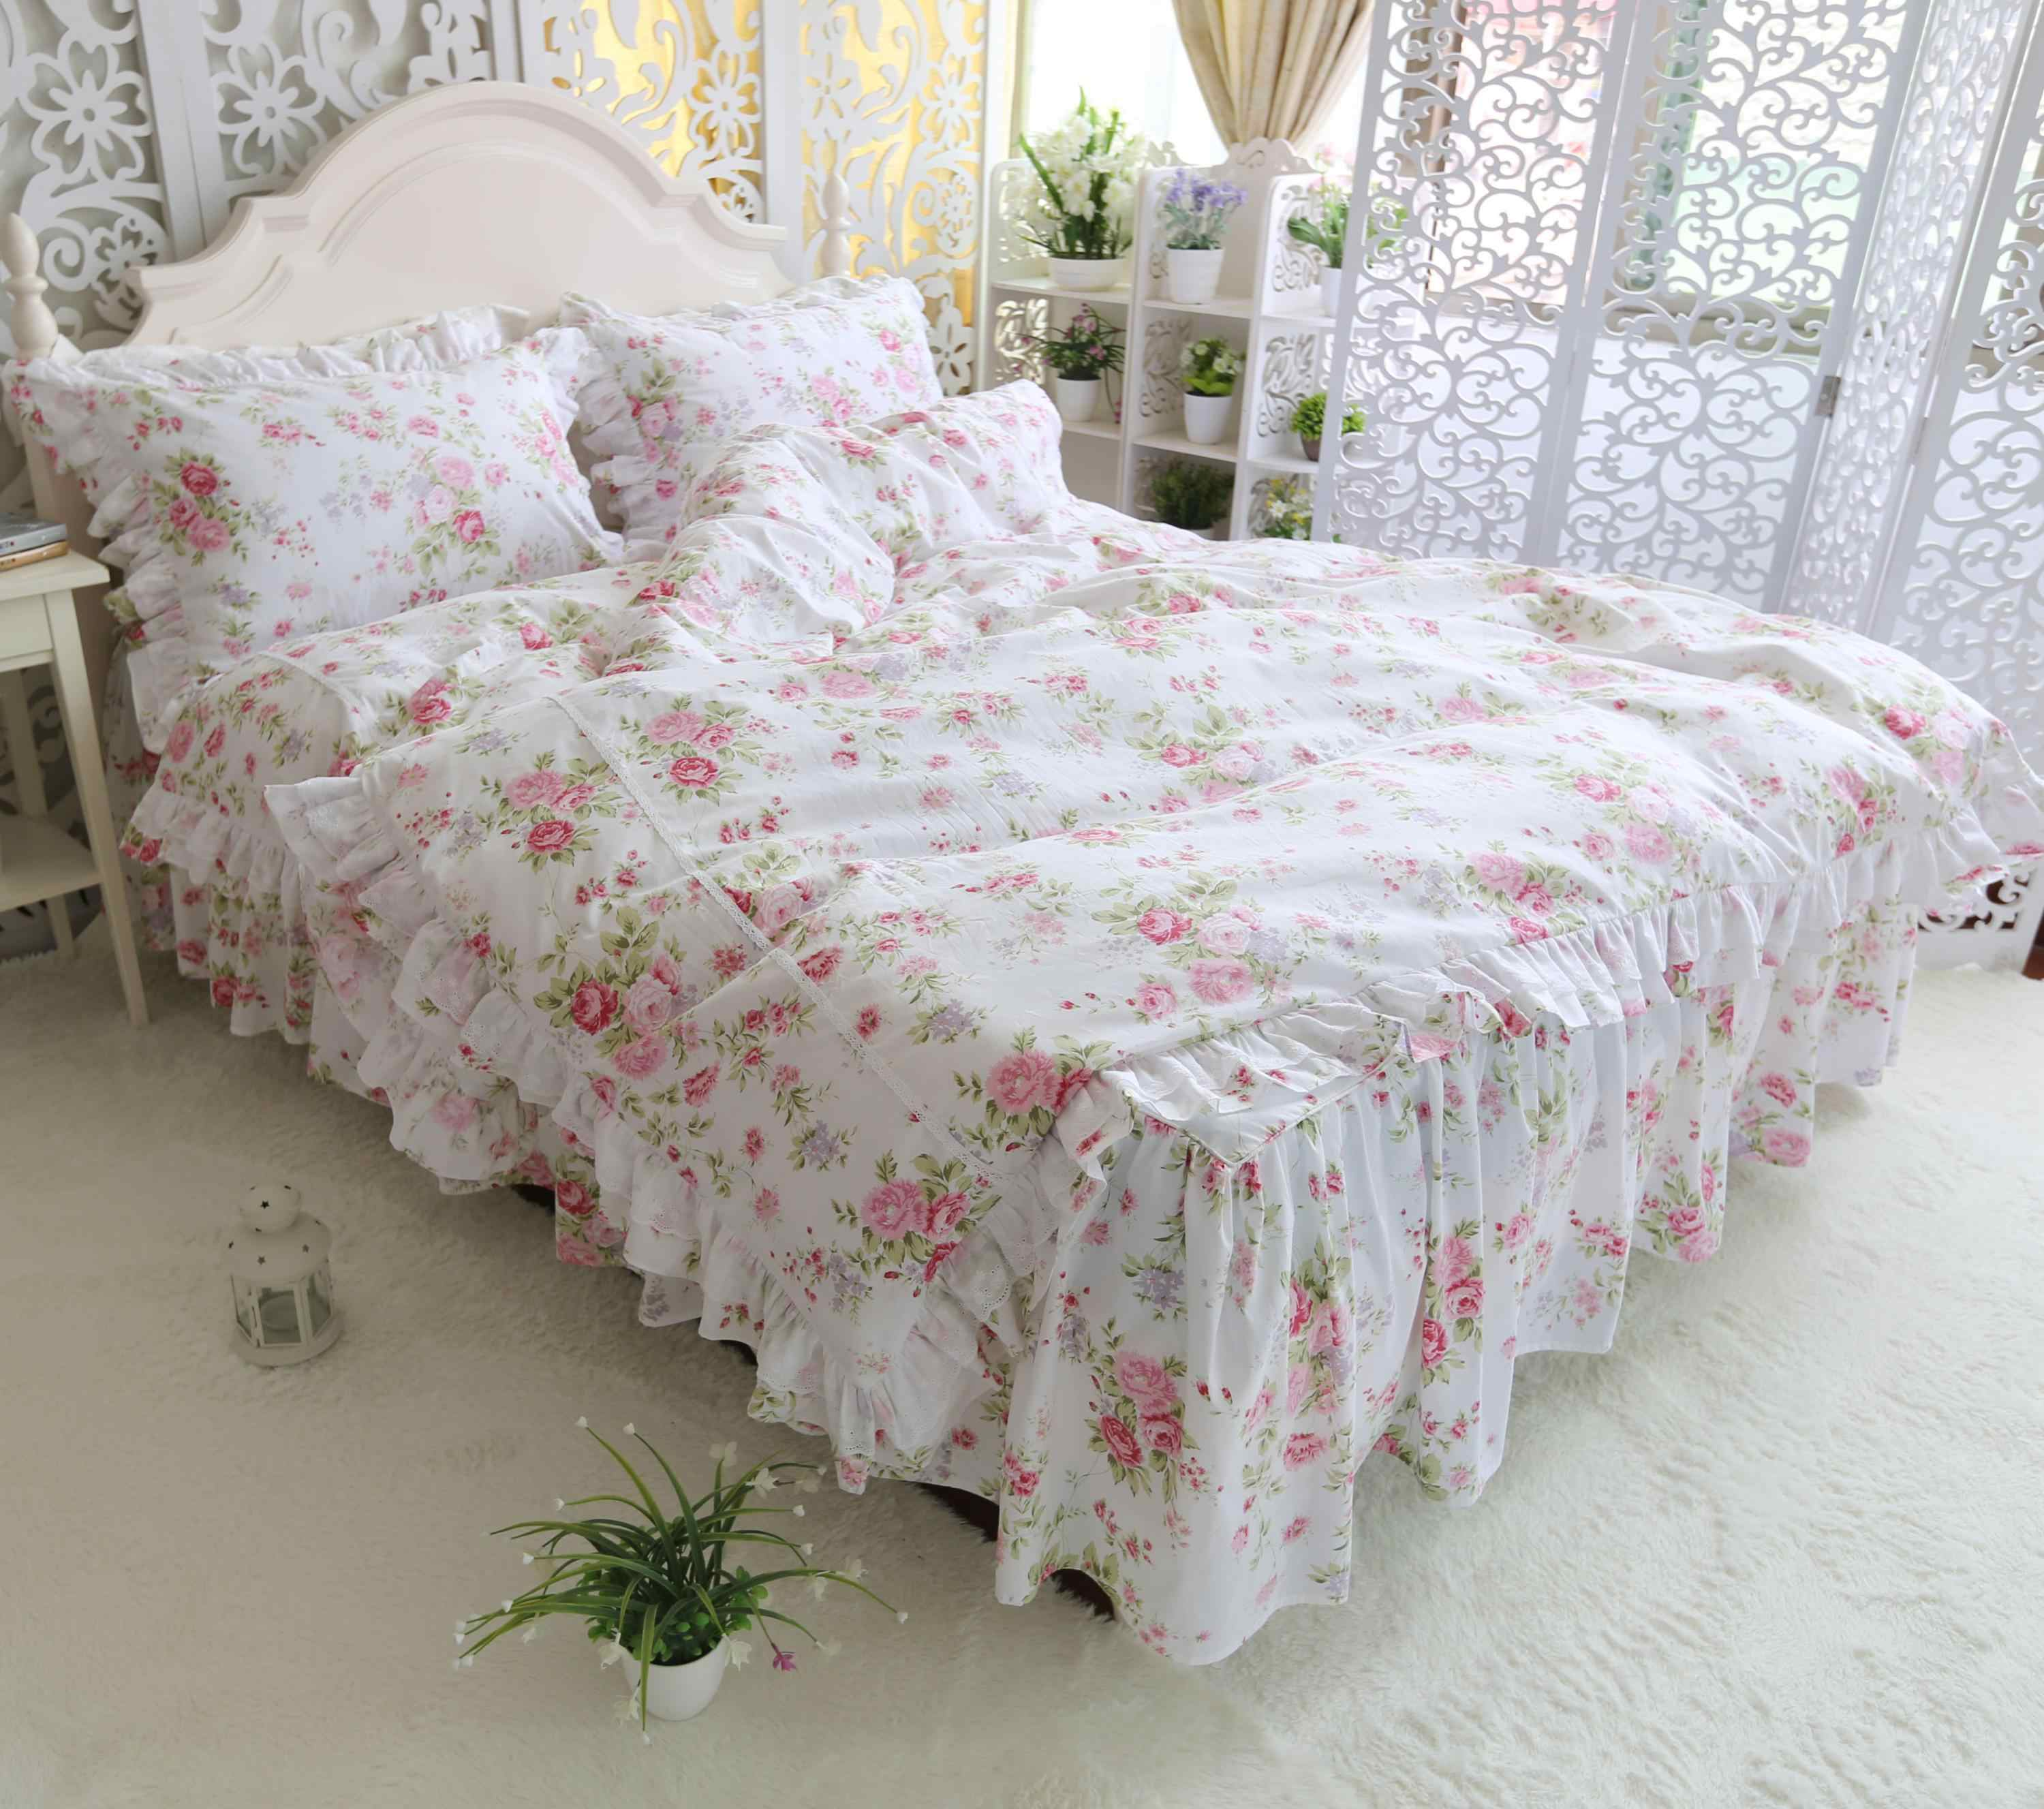 Ruffles Floral Princess Bedding Set 4 Pieces White Colorful Flowers Duvet Cover Bedskirt Set 100 Cotton Ultra Soft All Season Bedding Sets Aliexpress